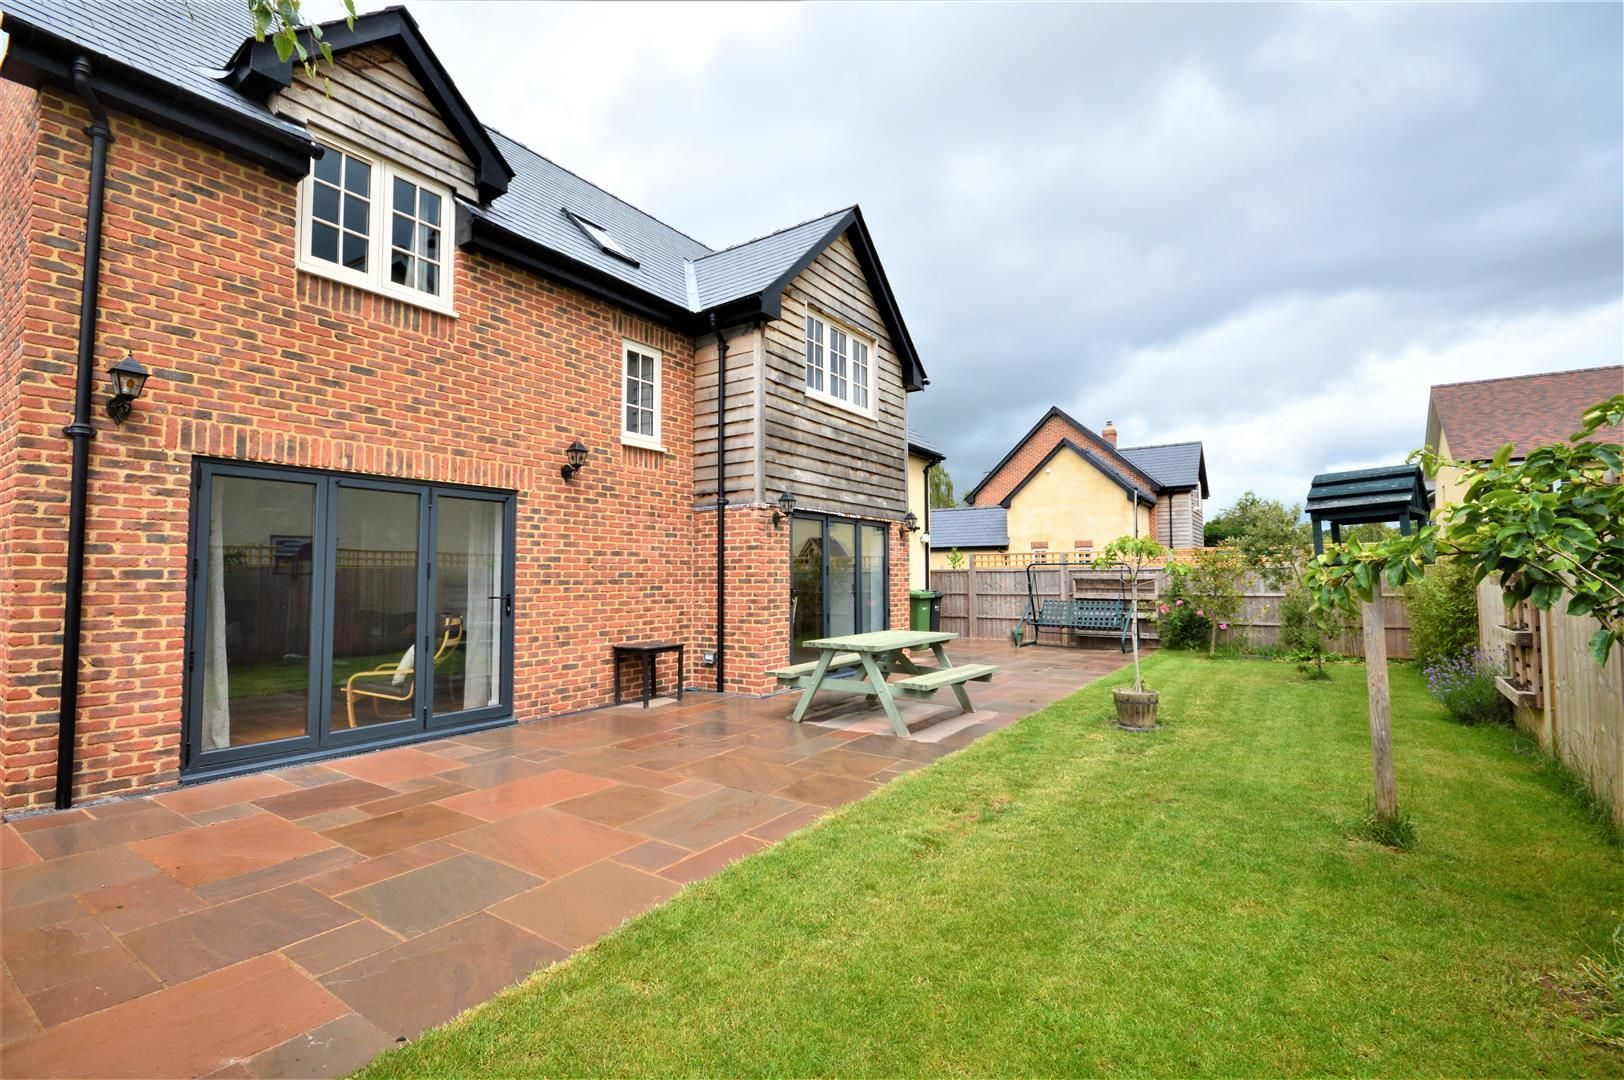 4 bed detached for sale in Marden 20